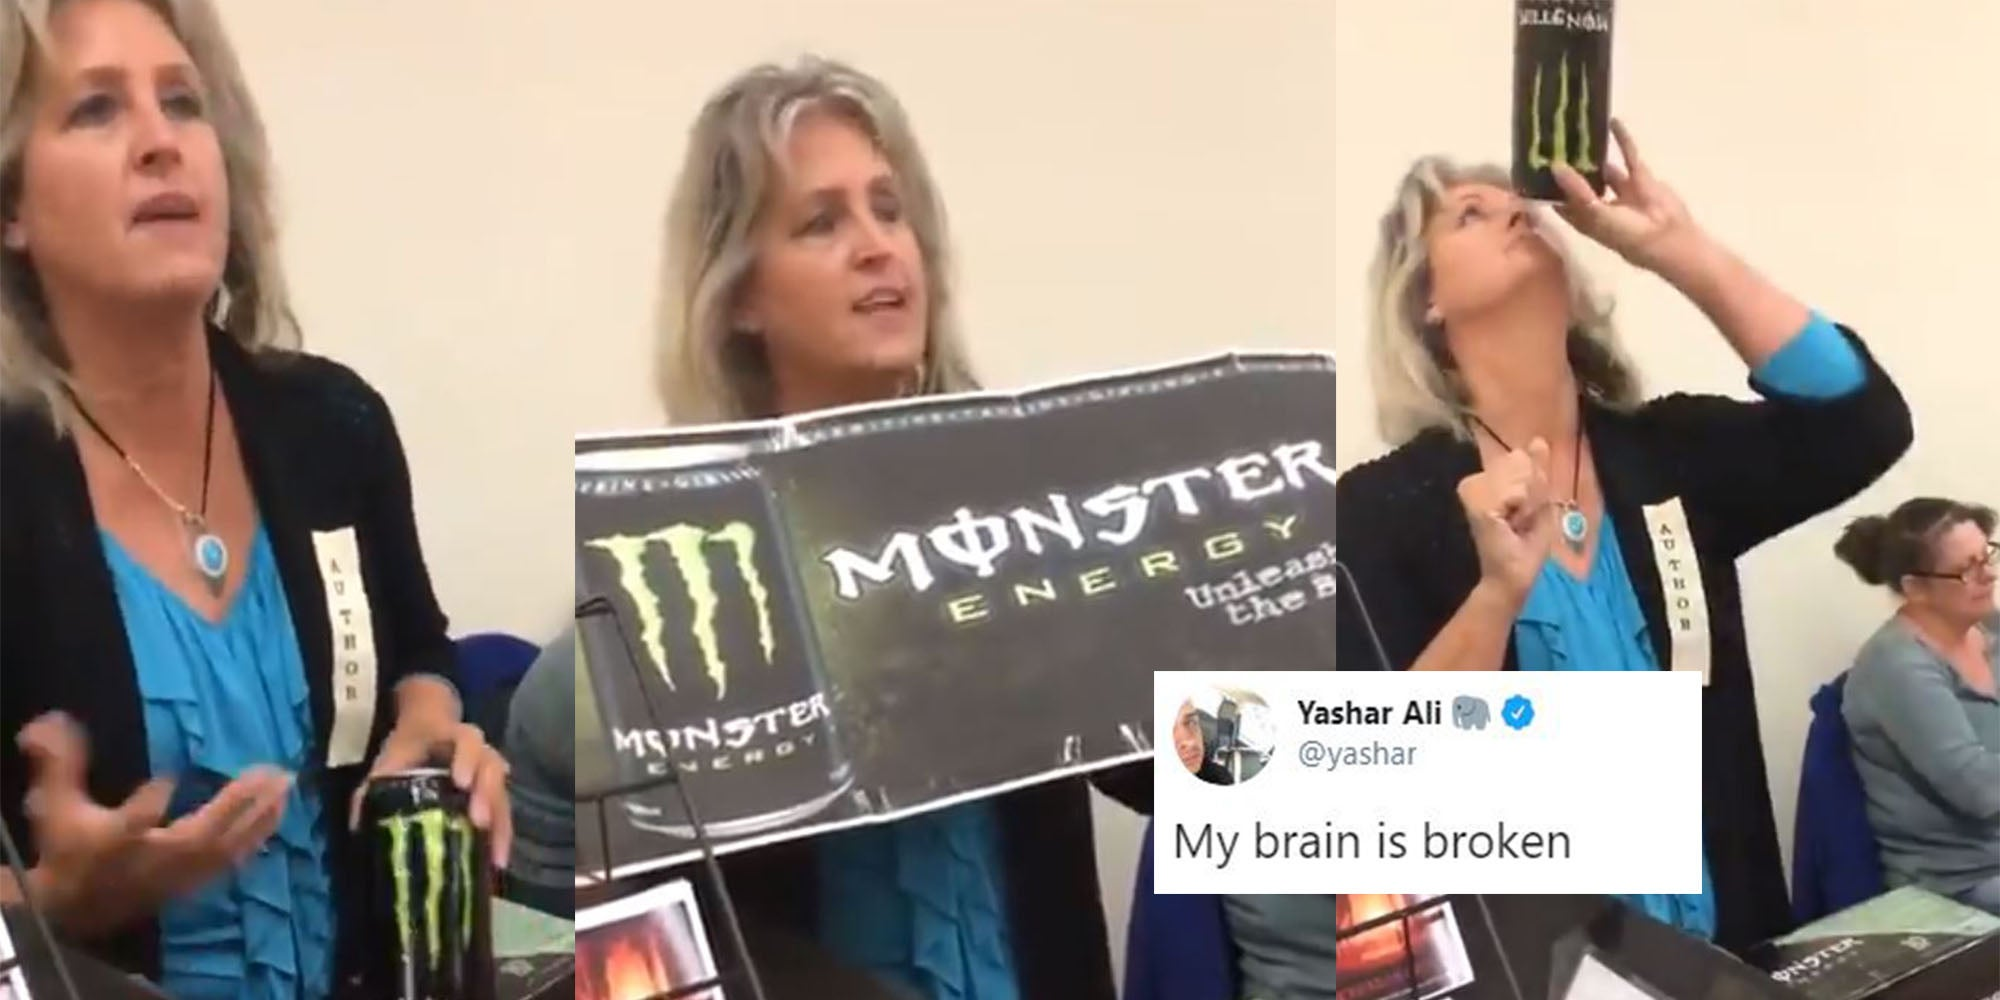 2014 video of woman claiming that Monster energy drinks